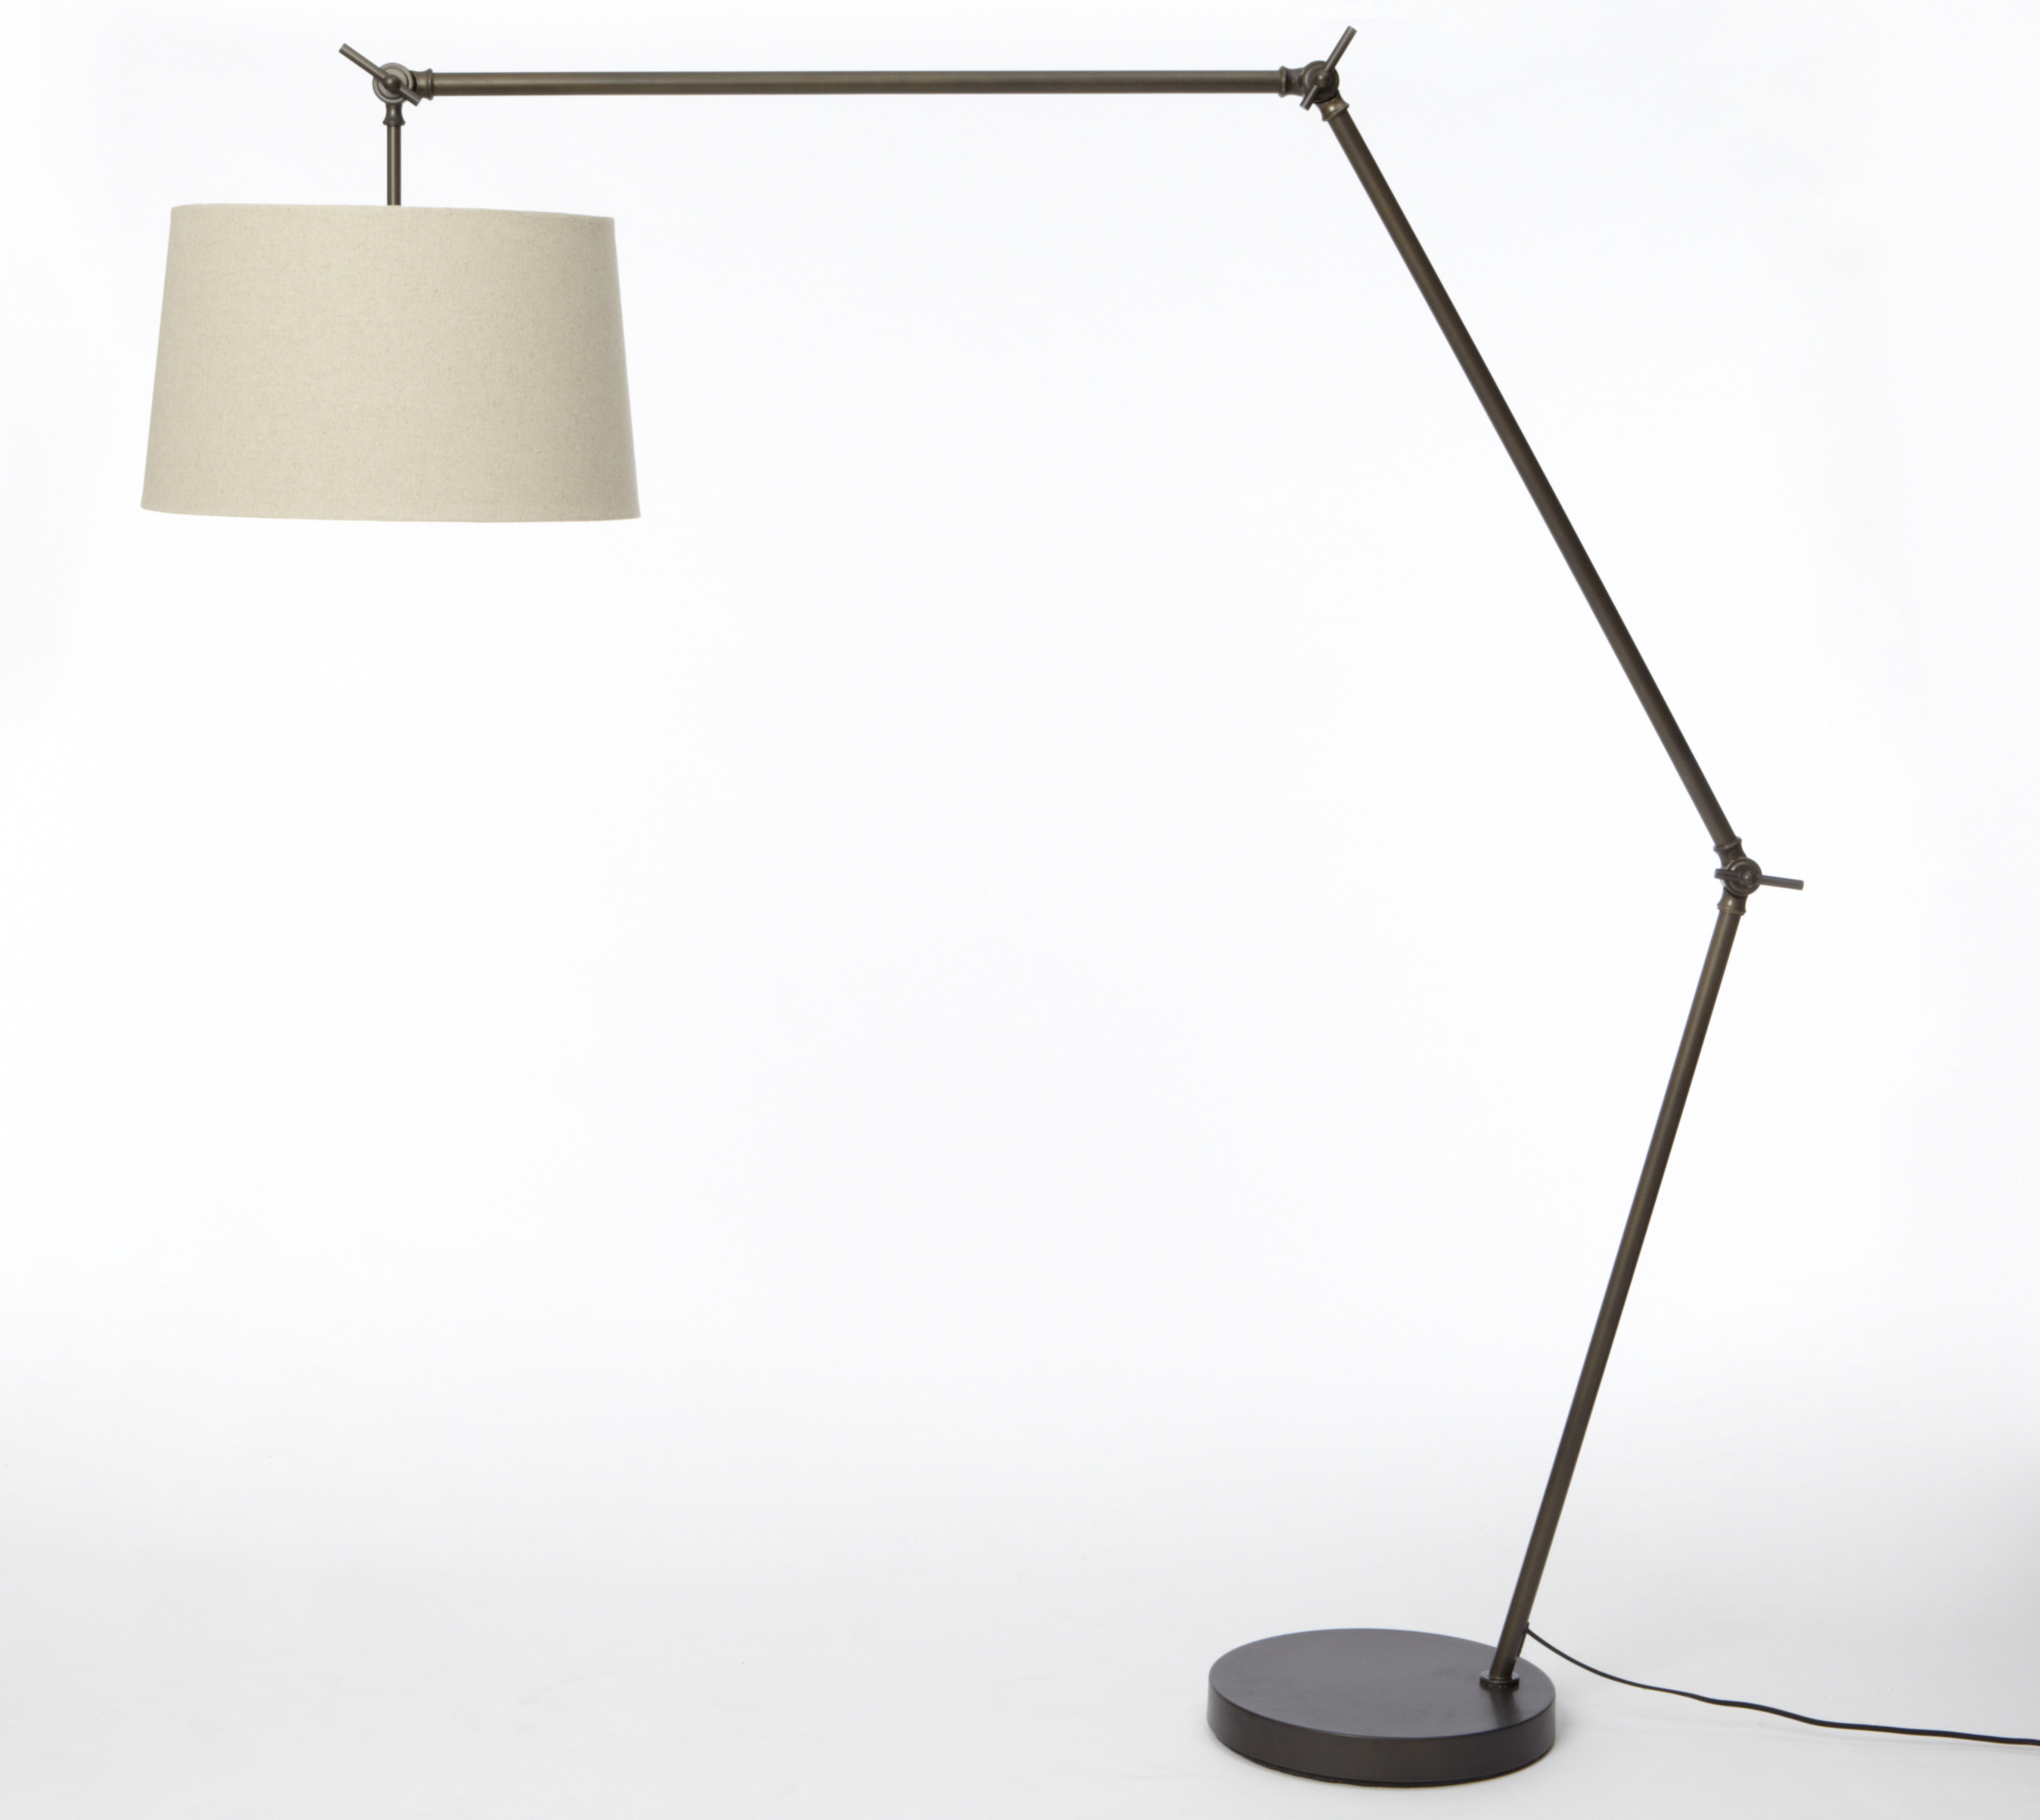 Floor Standing Tripod Lamp Floor Lamp Stand The Balance Of Appeal And Functionality